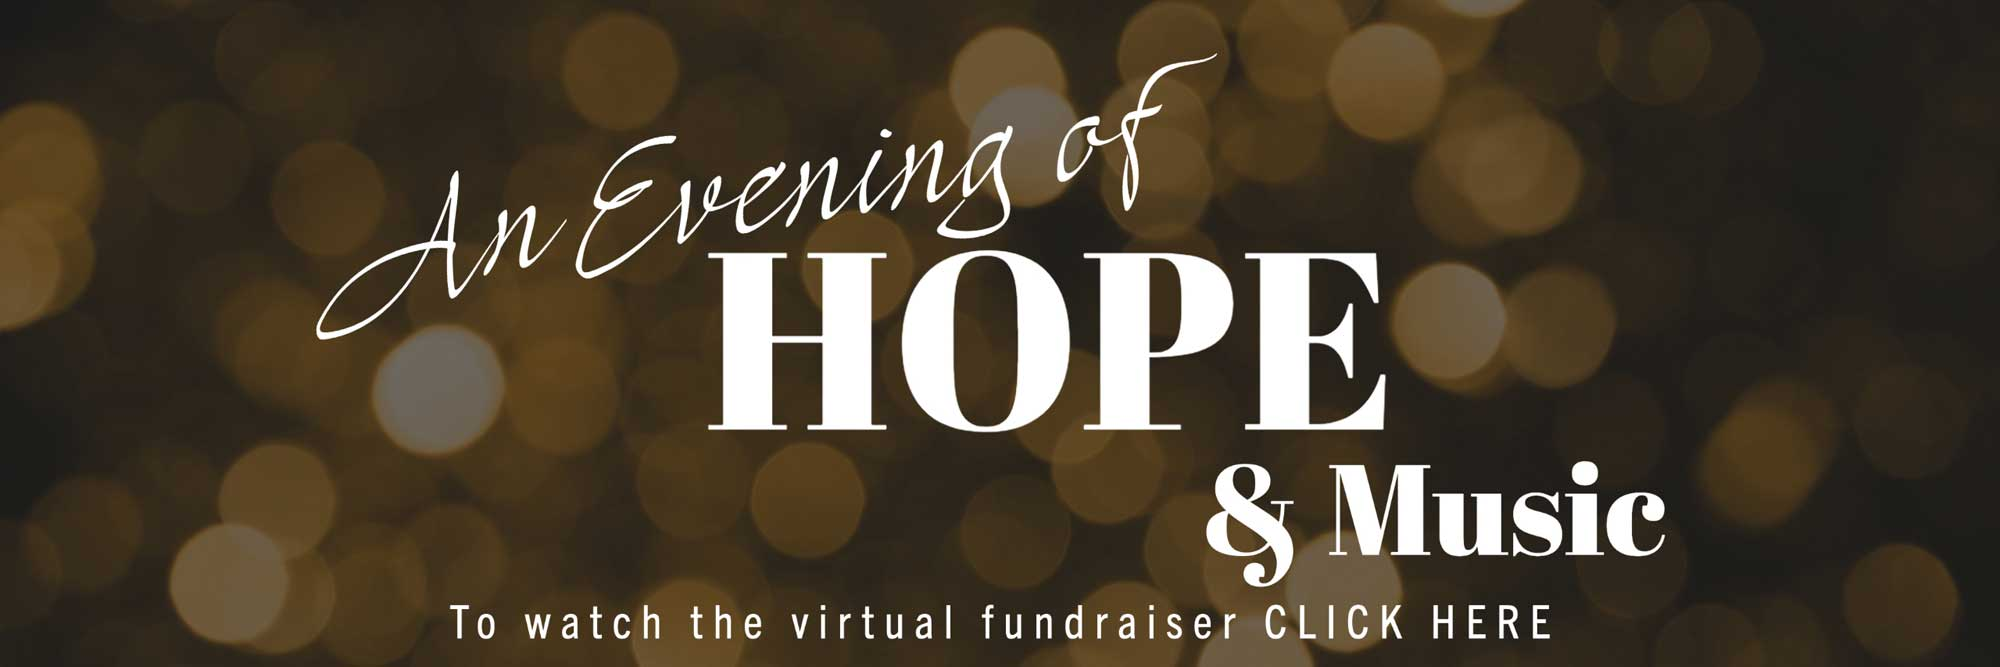 An Evening of HOPE & Music, watch the recording.